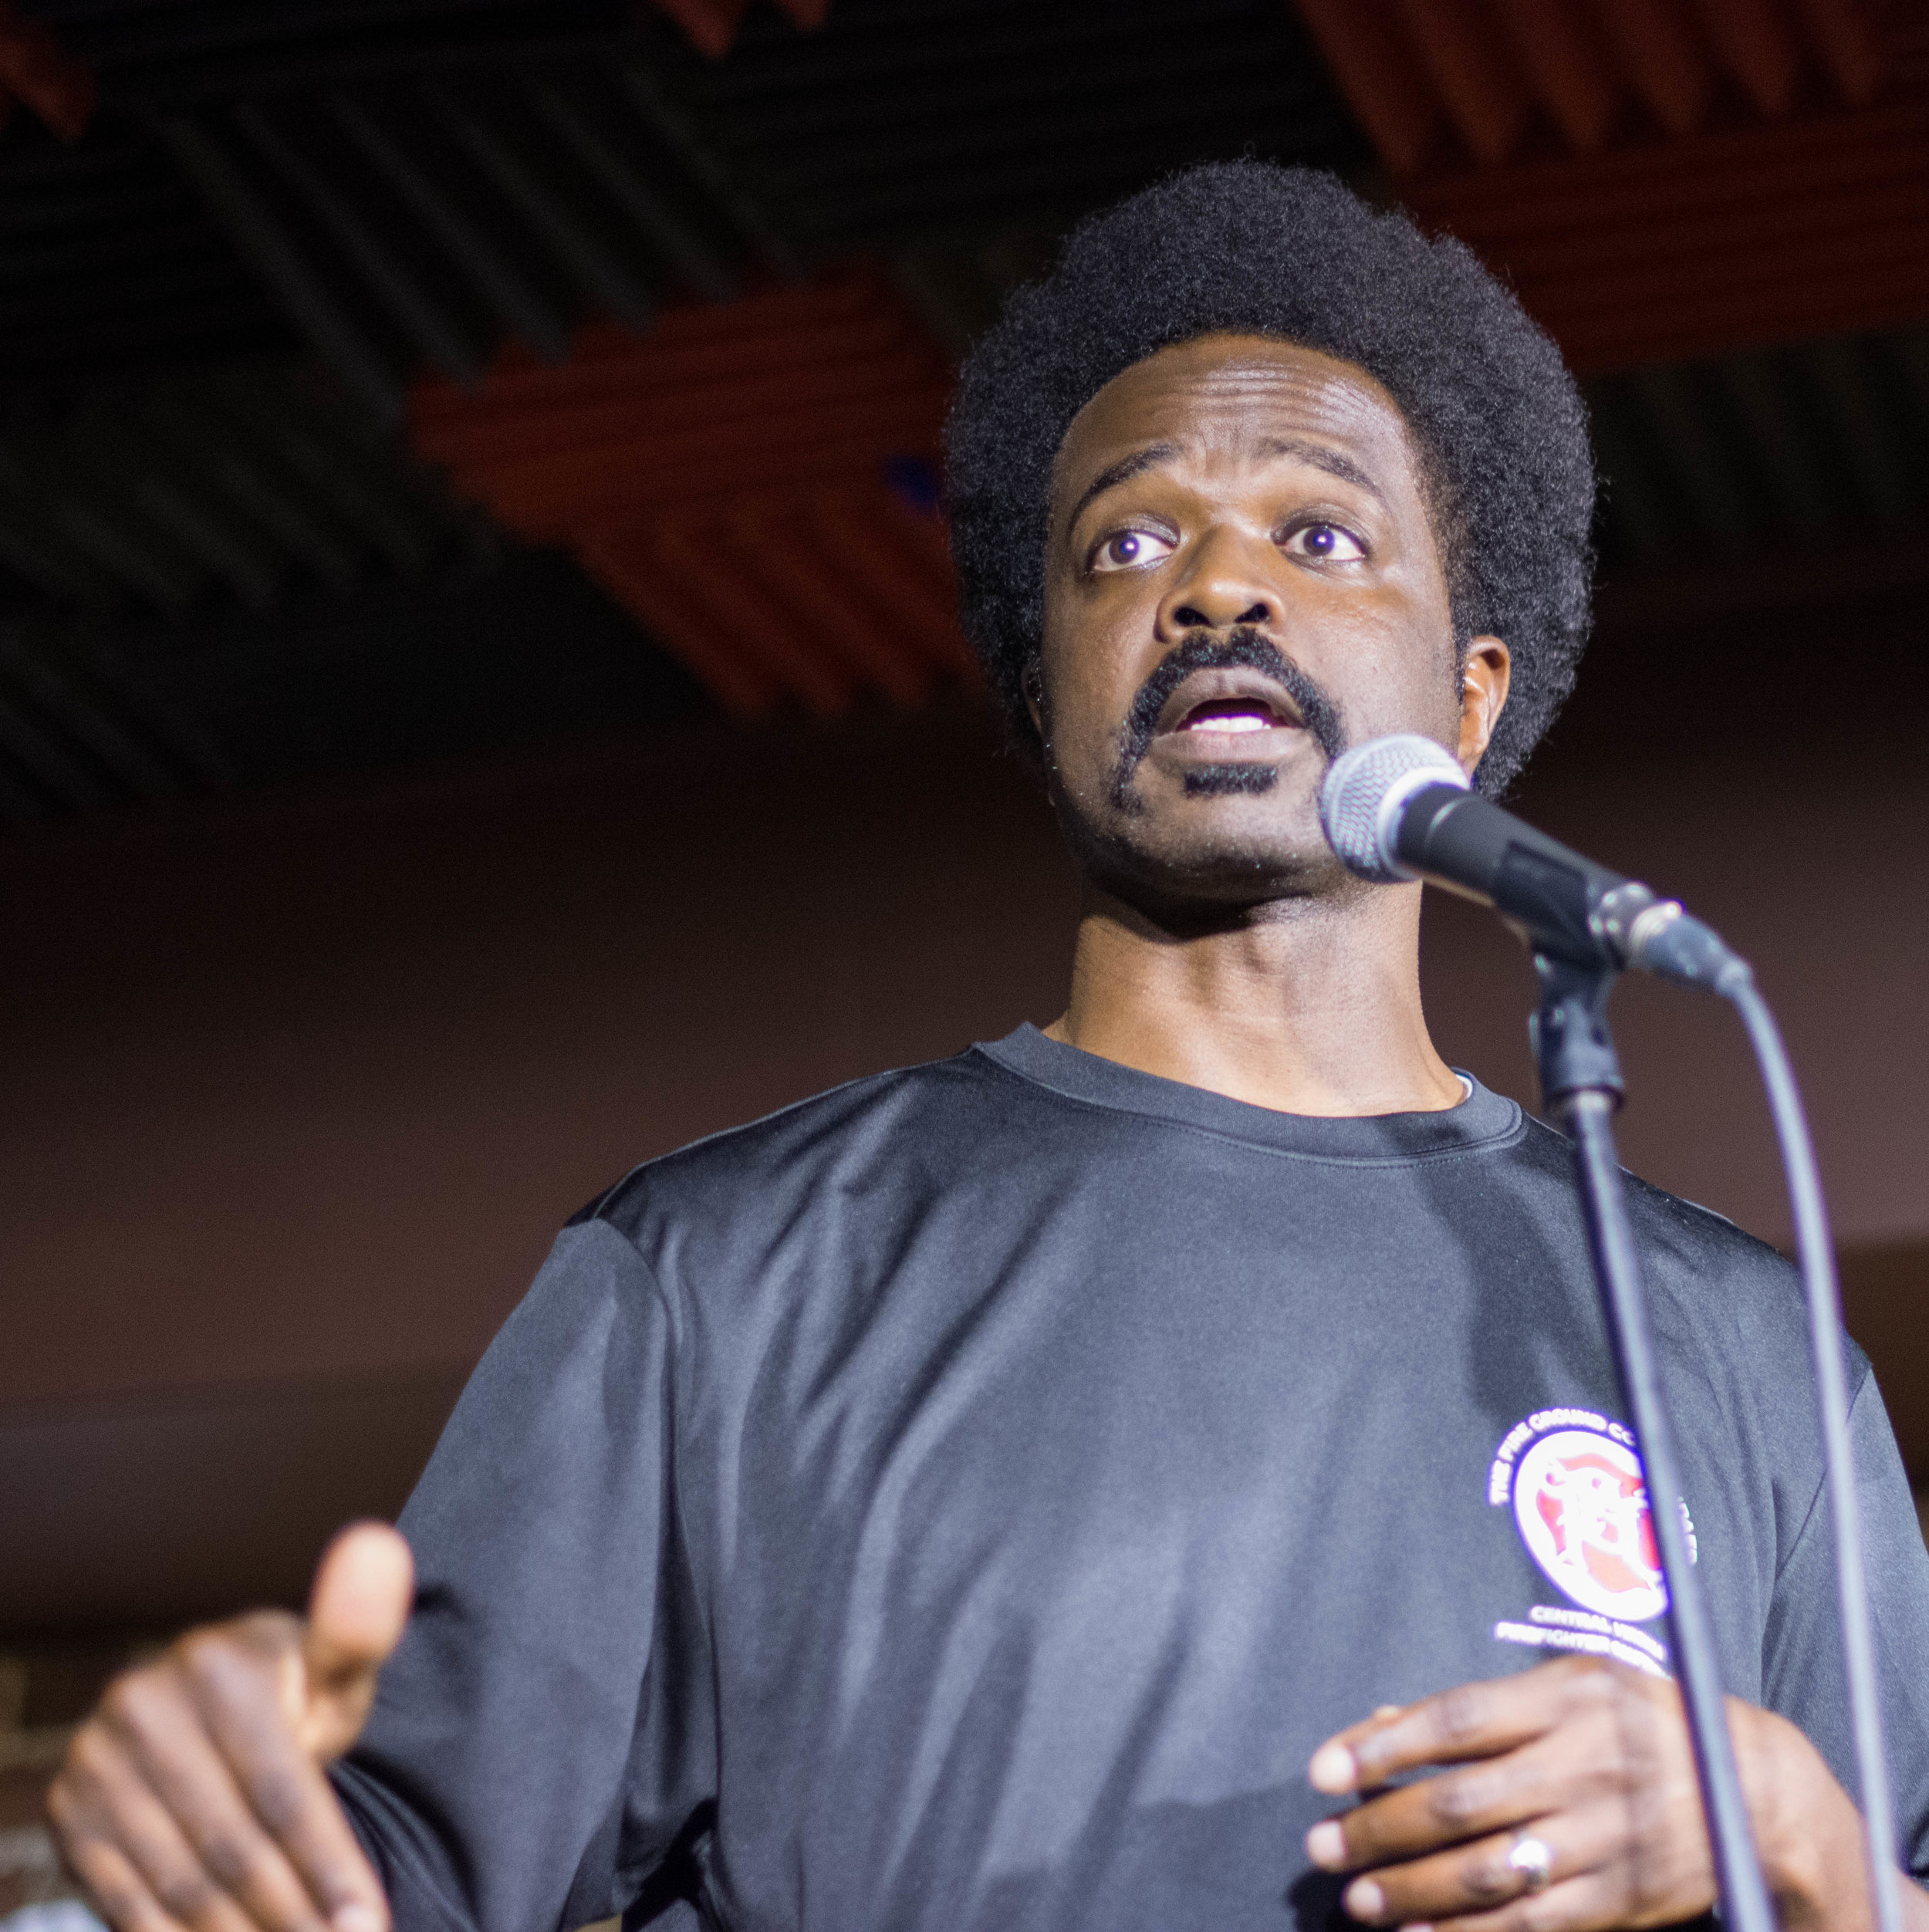 Nick Baskerville shares his story on the Story Collider stage in Washington DC at Bier Baron Tavern in August 2018. Photo by Lauren Lipumba.